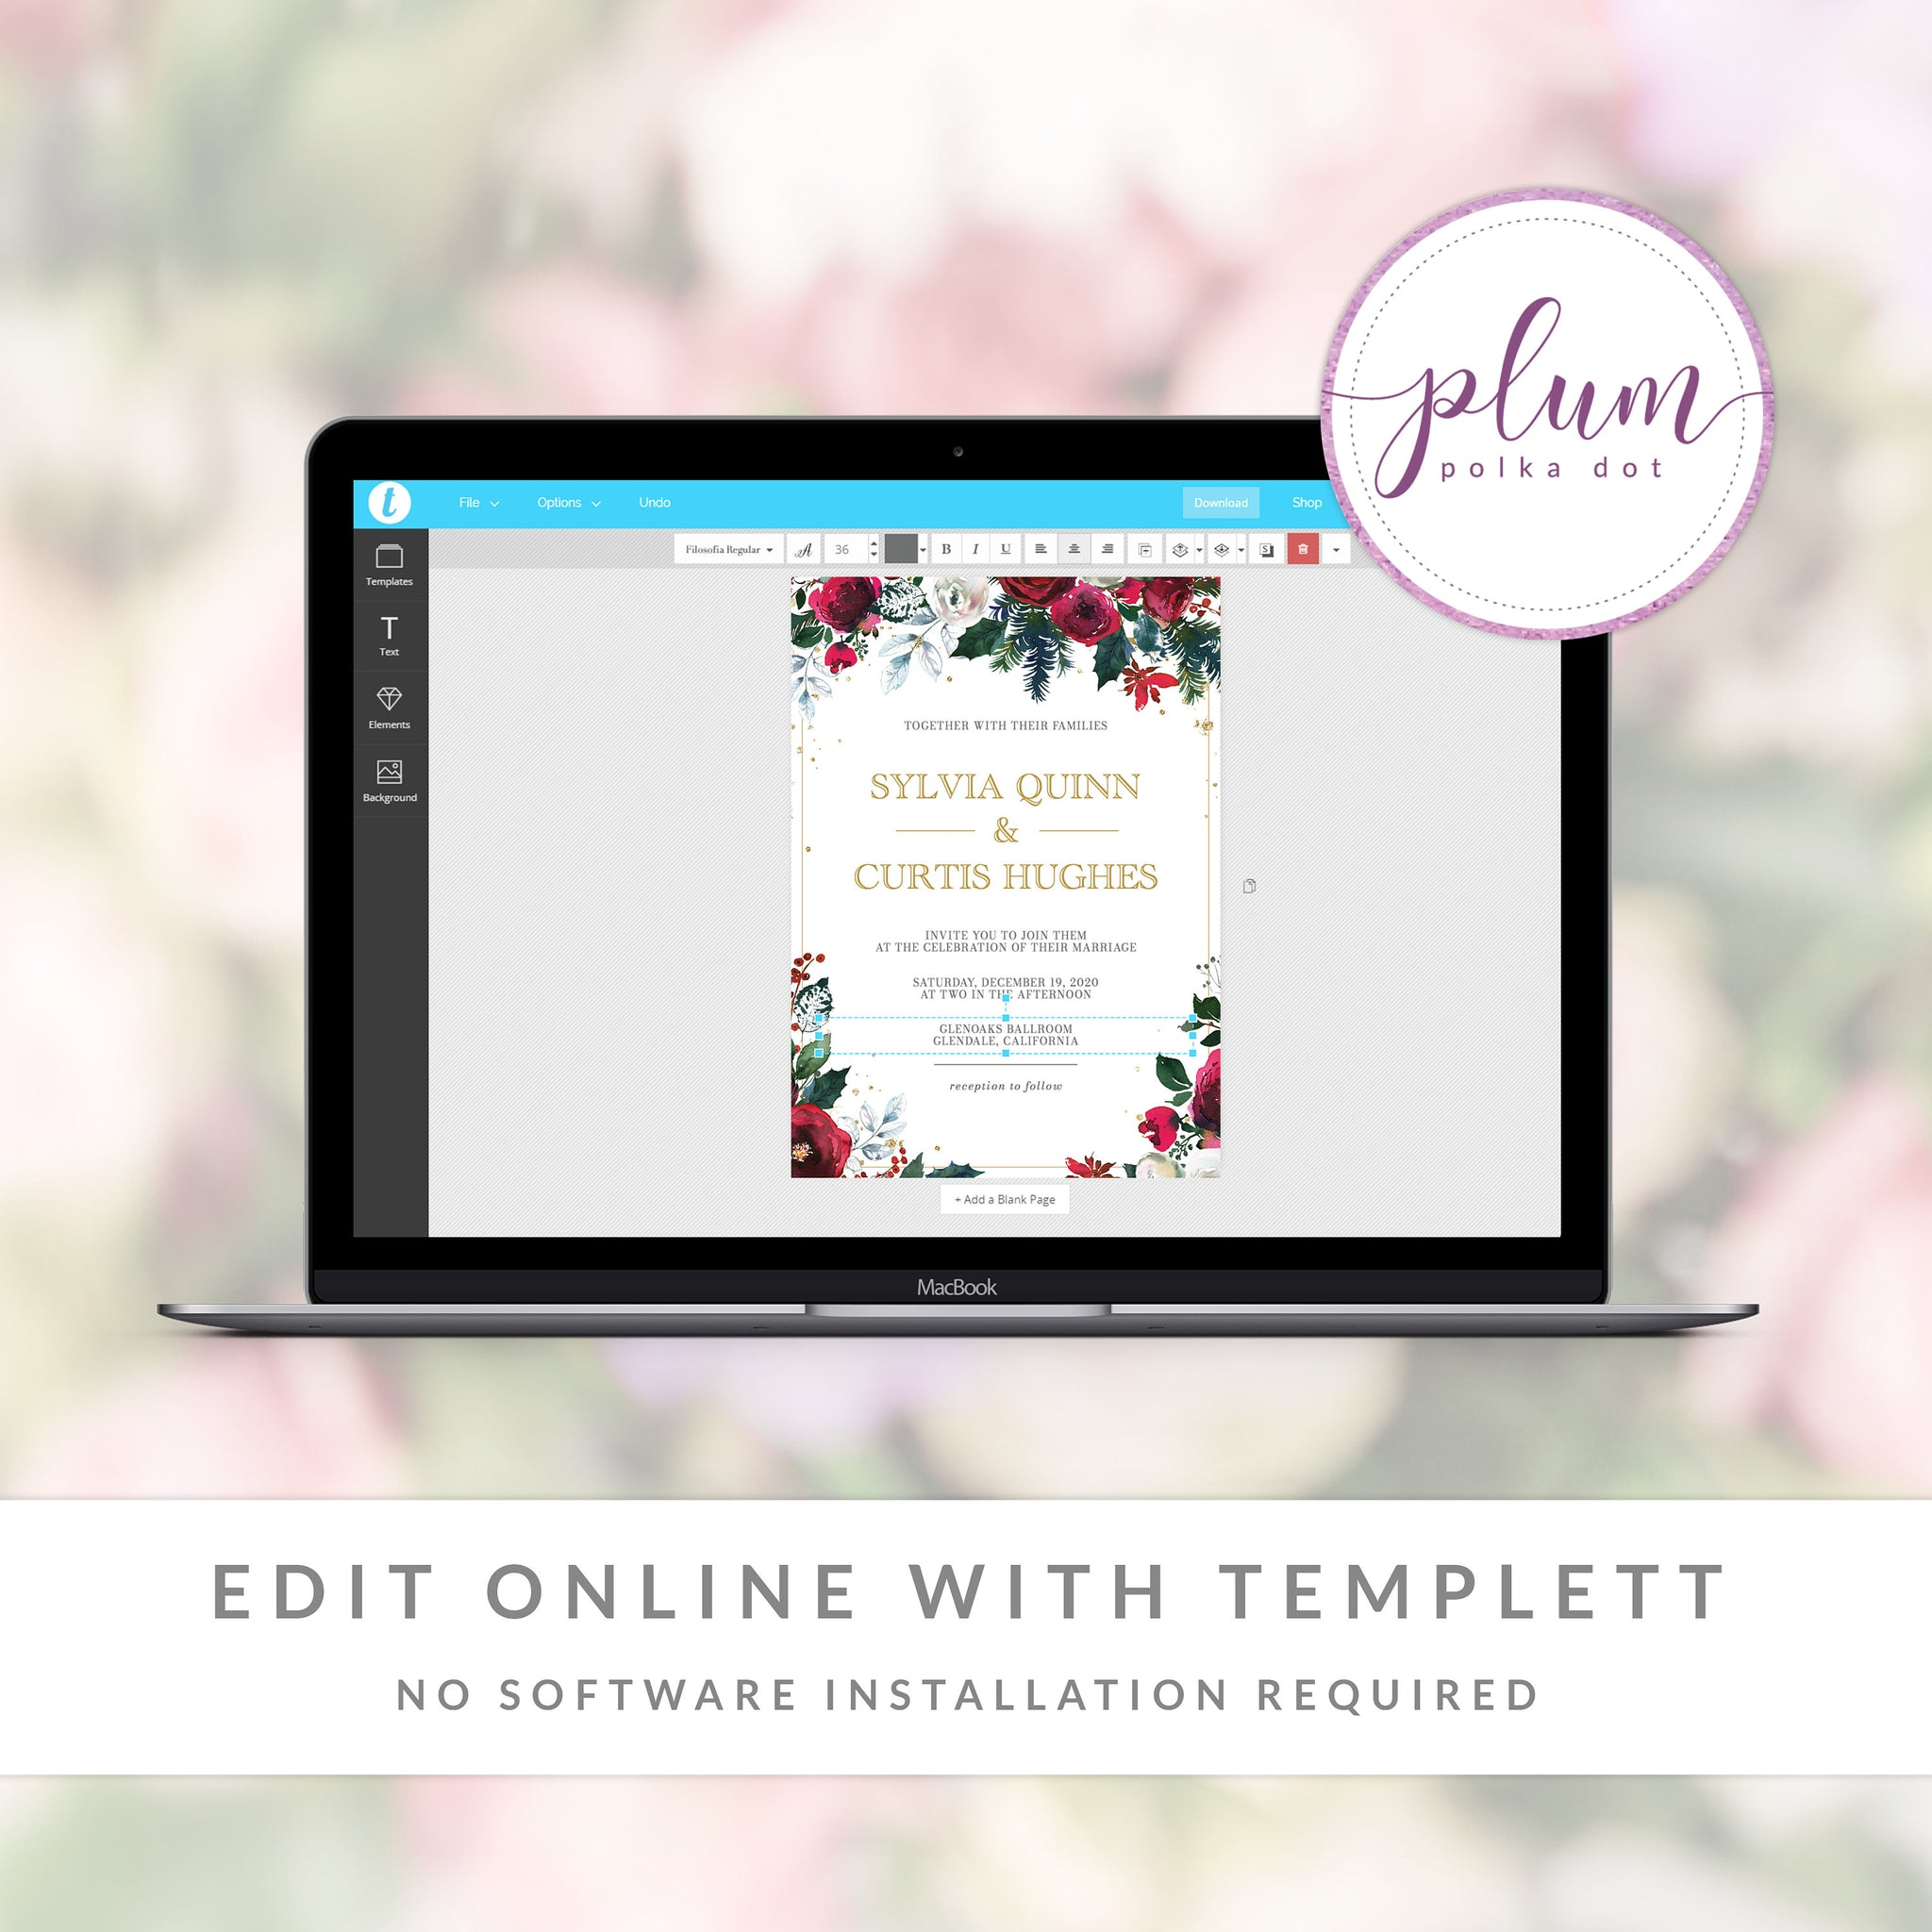 Christmas Wedding Invitation Template, Holiday Wedding Invitation Set, Editable Winter Wedding Invitation, DIGITAL DOWNLOAD - CG100 - @PlumPolkaDot